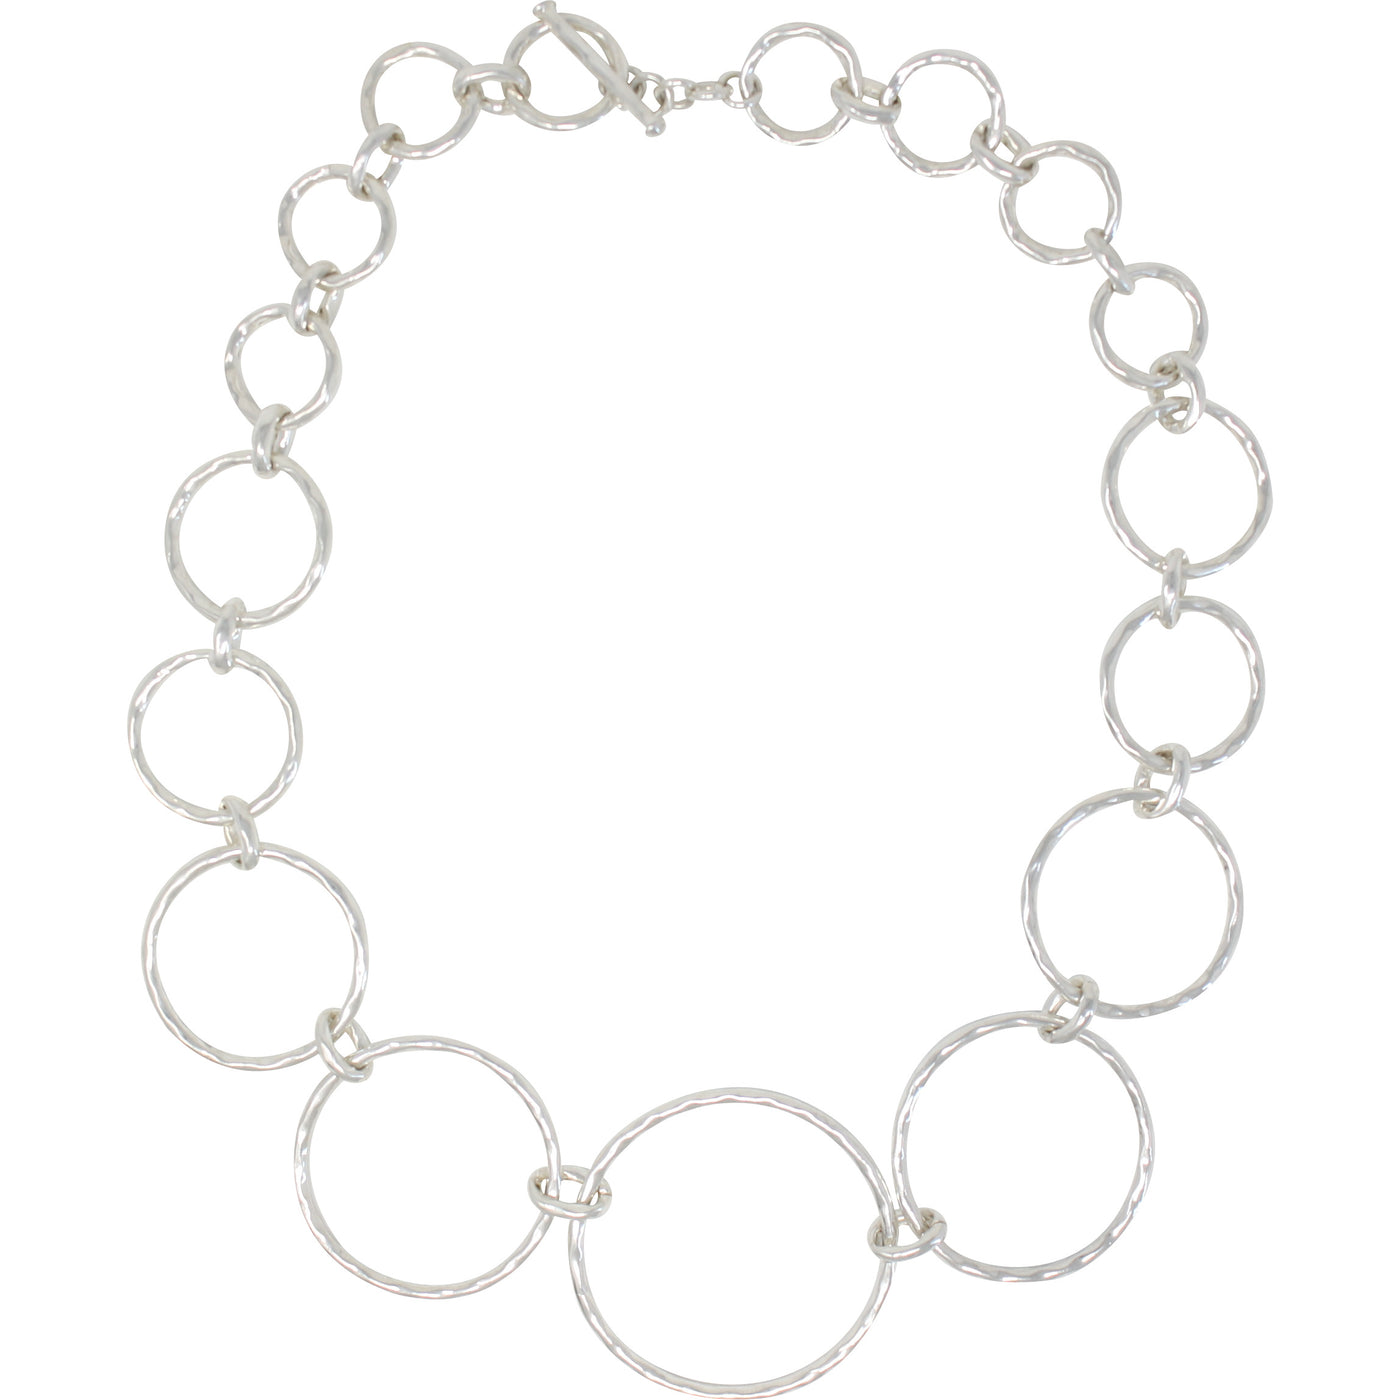 TM 101 GRADUATED OPEN CIRCLES NECKLACE